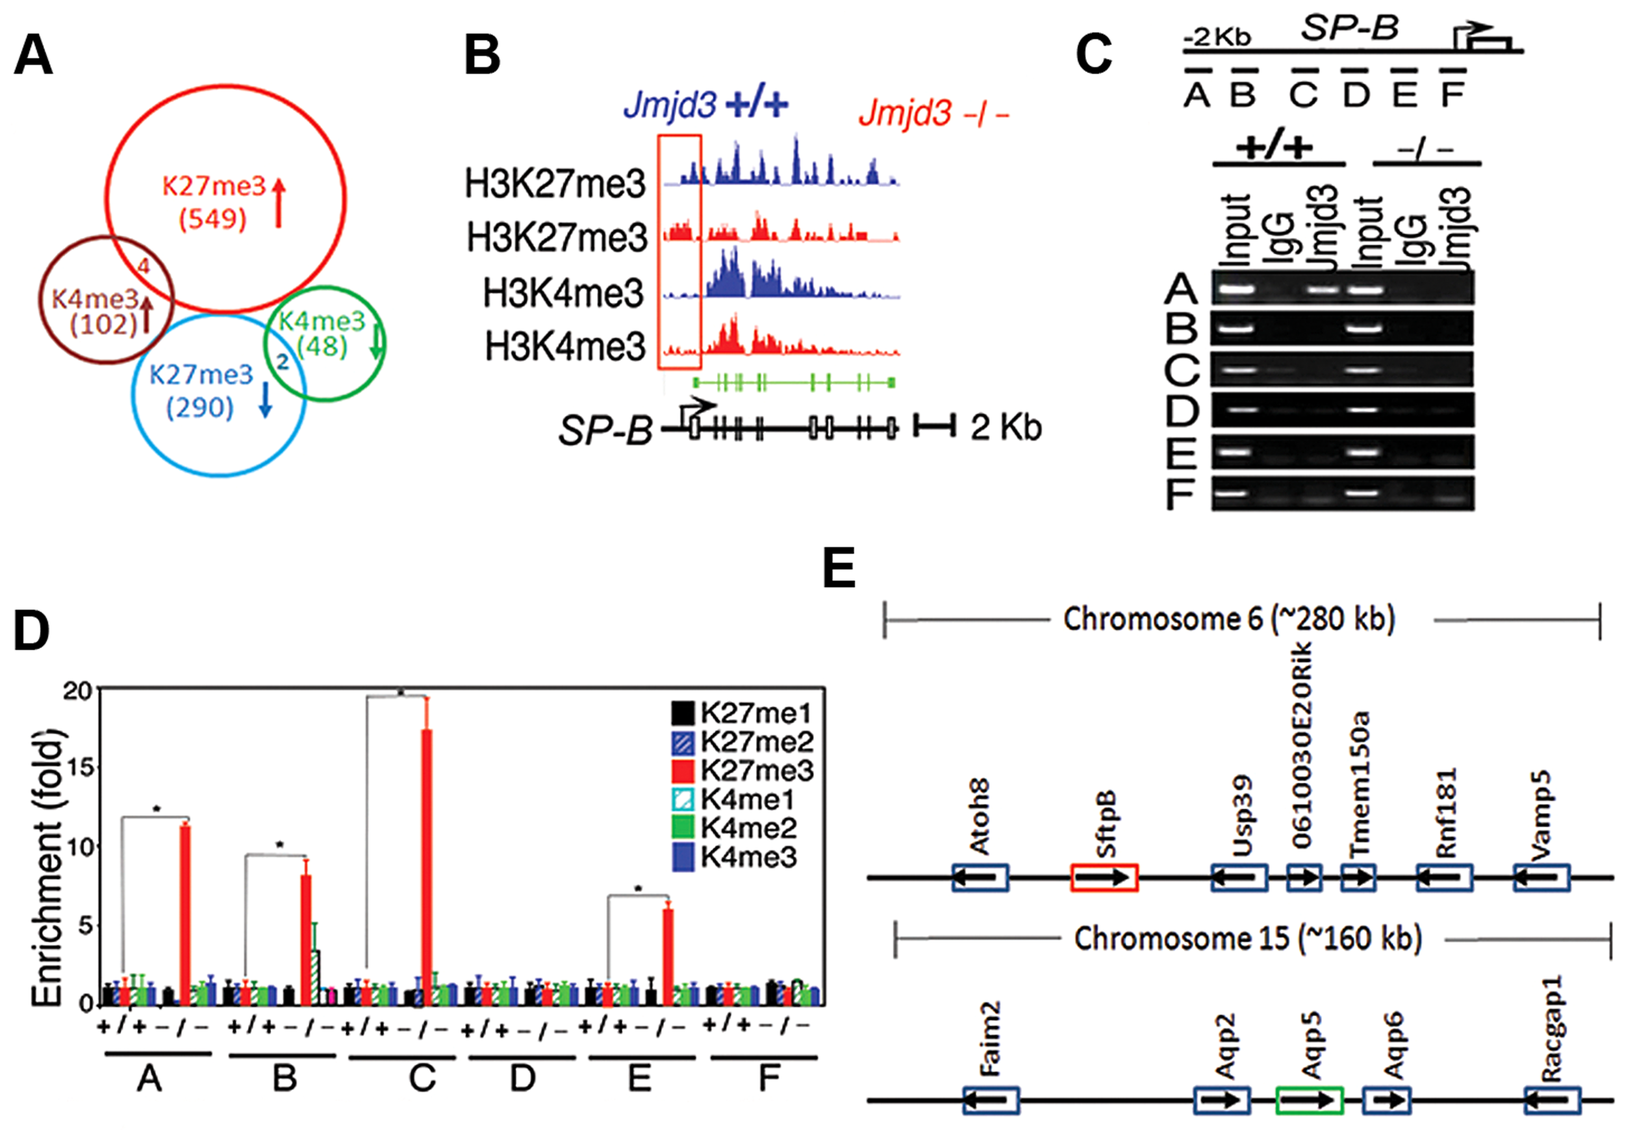 <i>Jmjd</i>3 ablation affects global histone methylation in lung tissues and methylation status of the promoter regions of target genes.